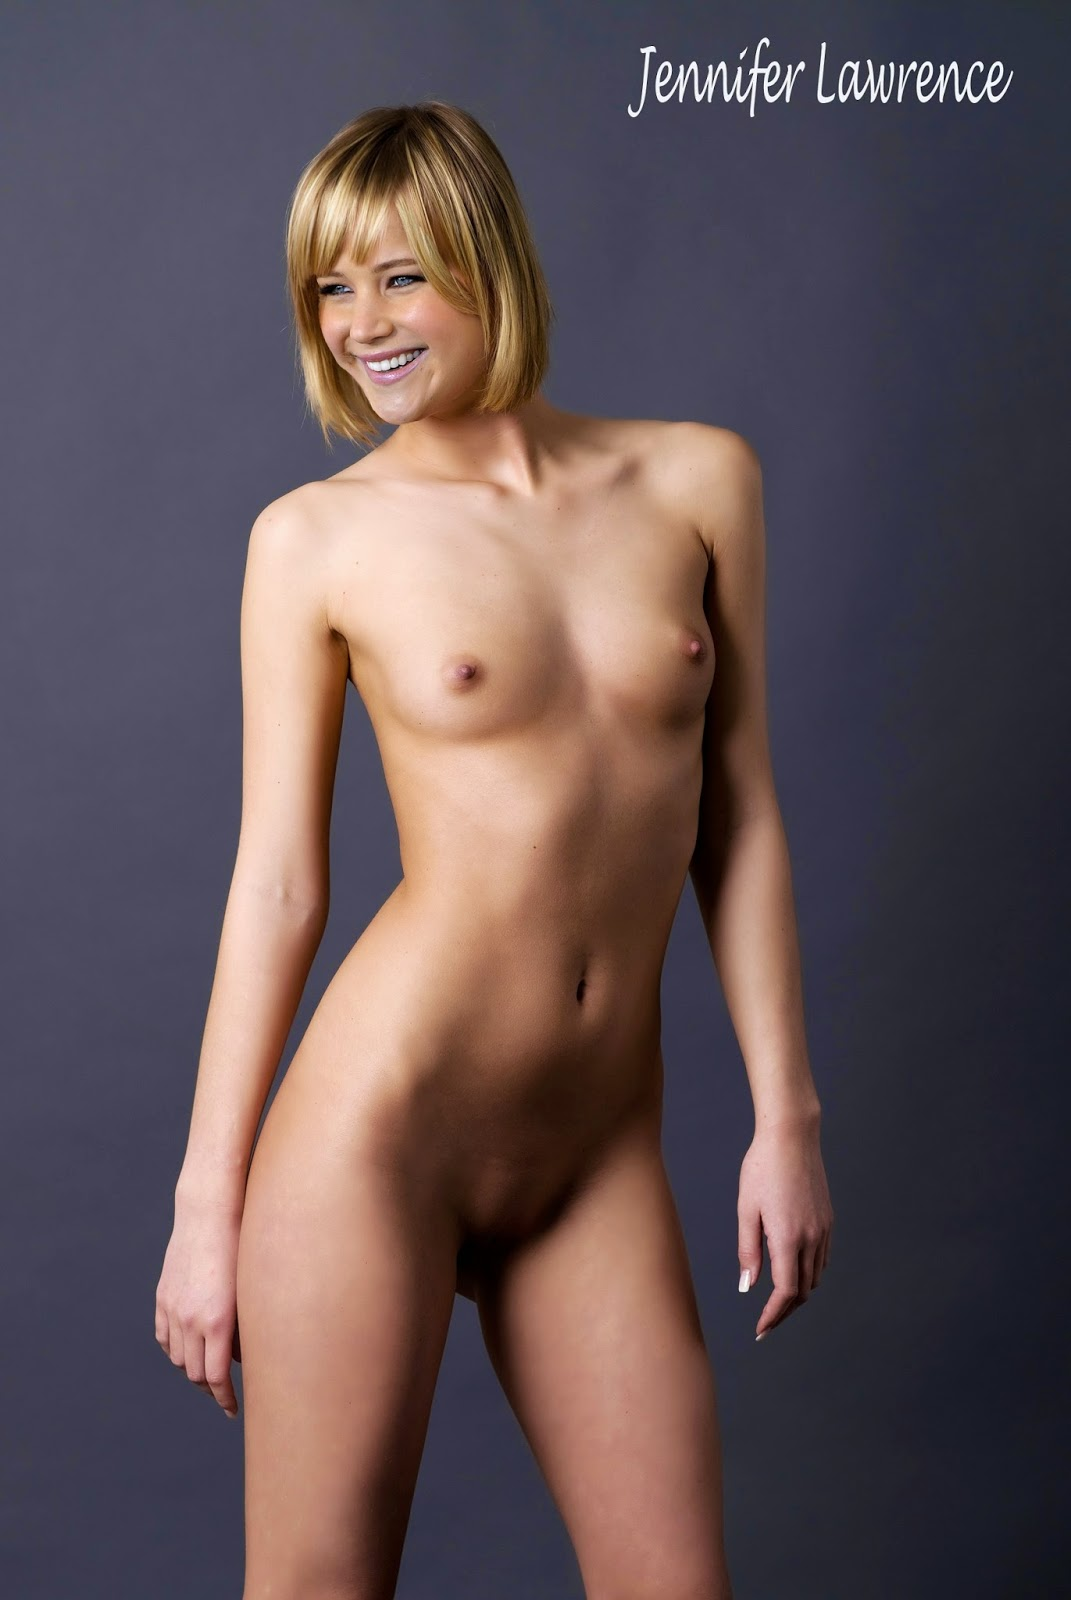 Nude Pics Of Jenifer Lawrence